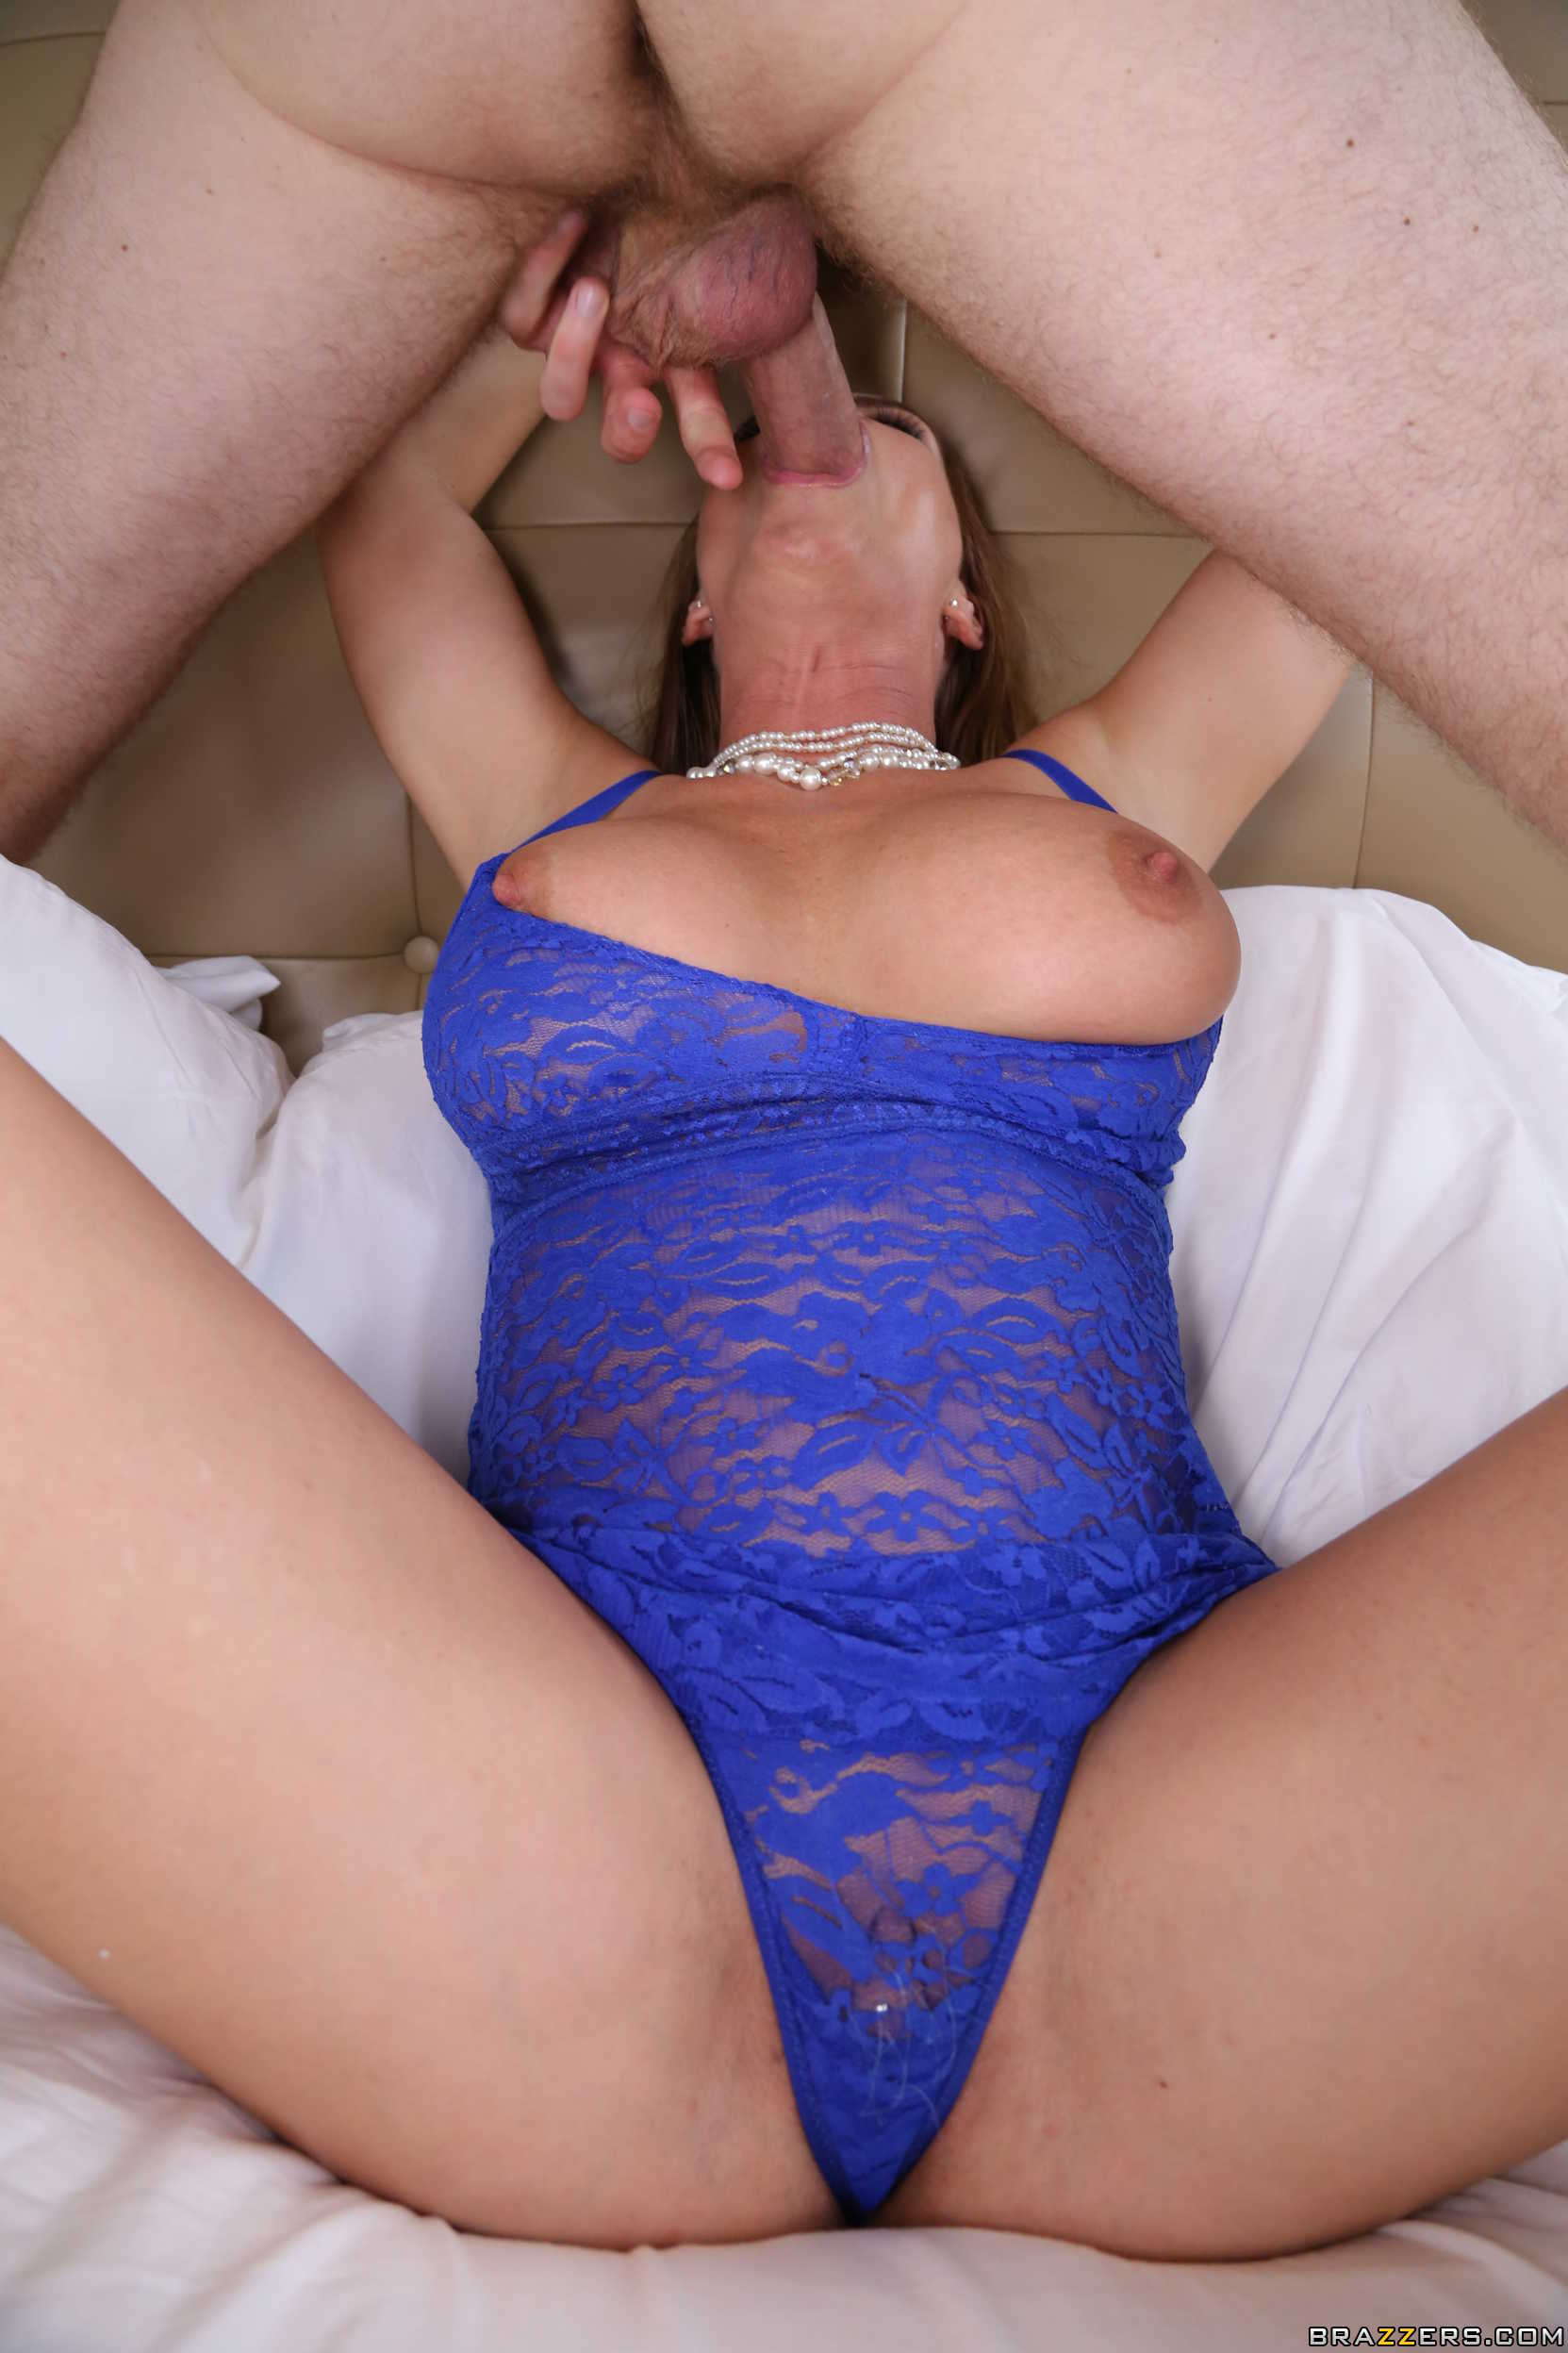 Mom wants to squirt for extra credit - 3 3